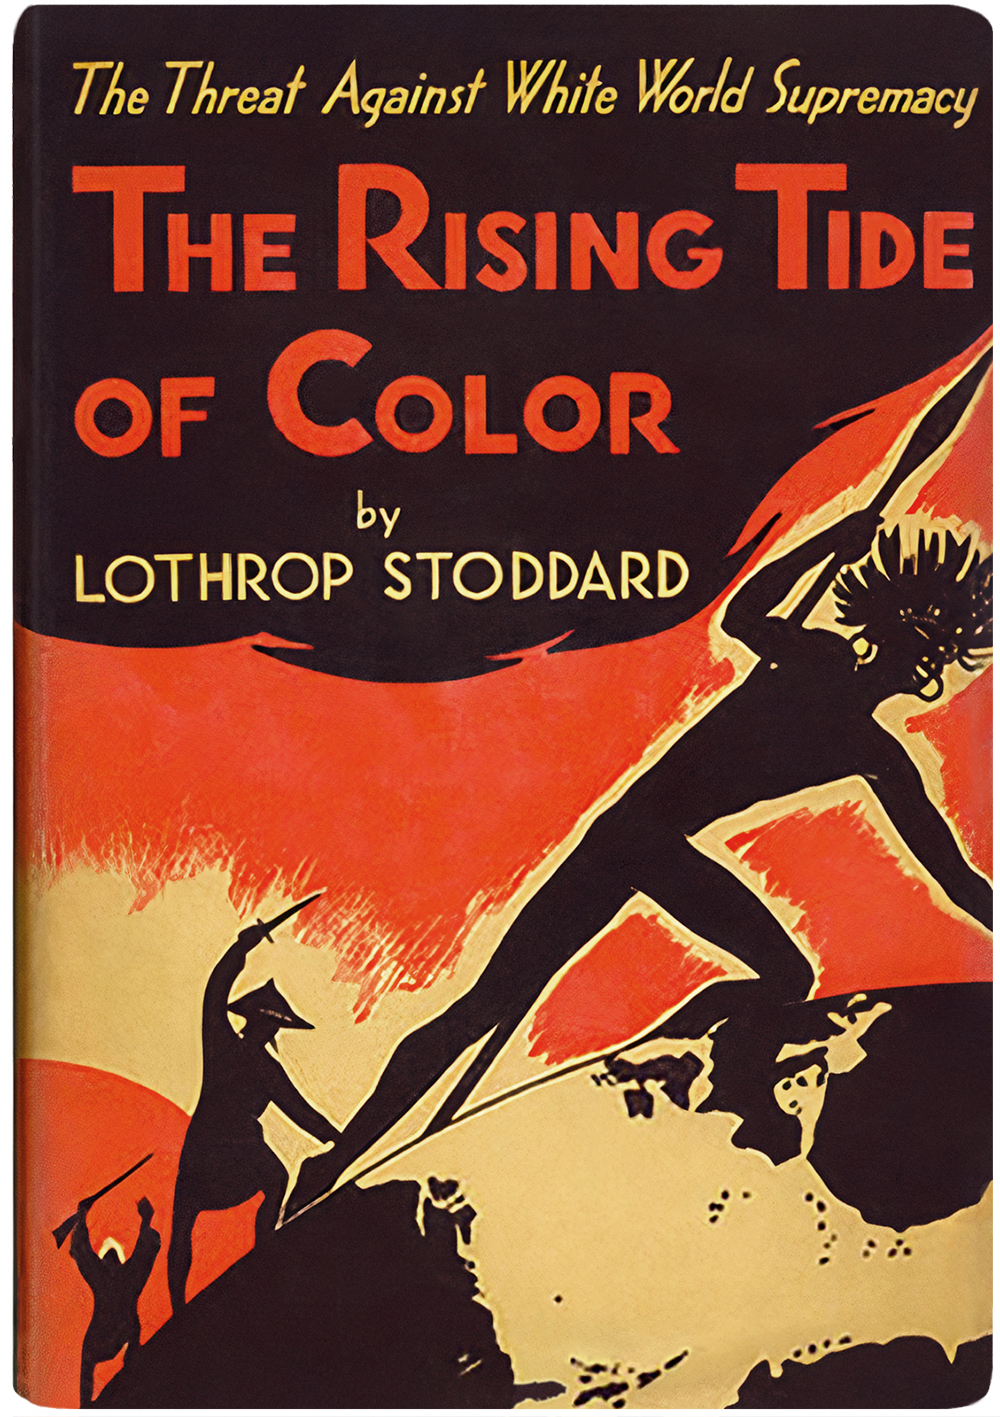 comparing the rising tide of color against white world supremacy and the great gatsby The rising tide of color: the threat against white tide of color against white world-supremacy 's novel the great gatsby in which antagonist tom.